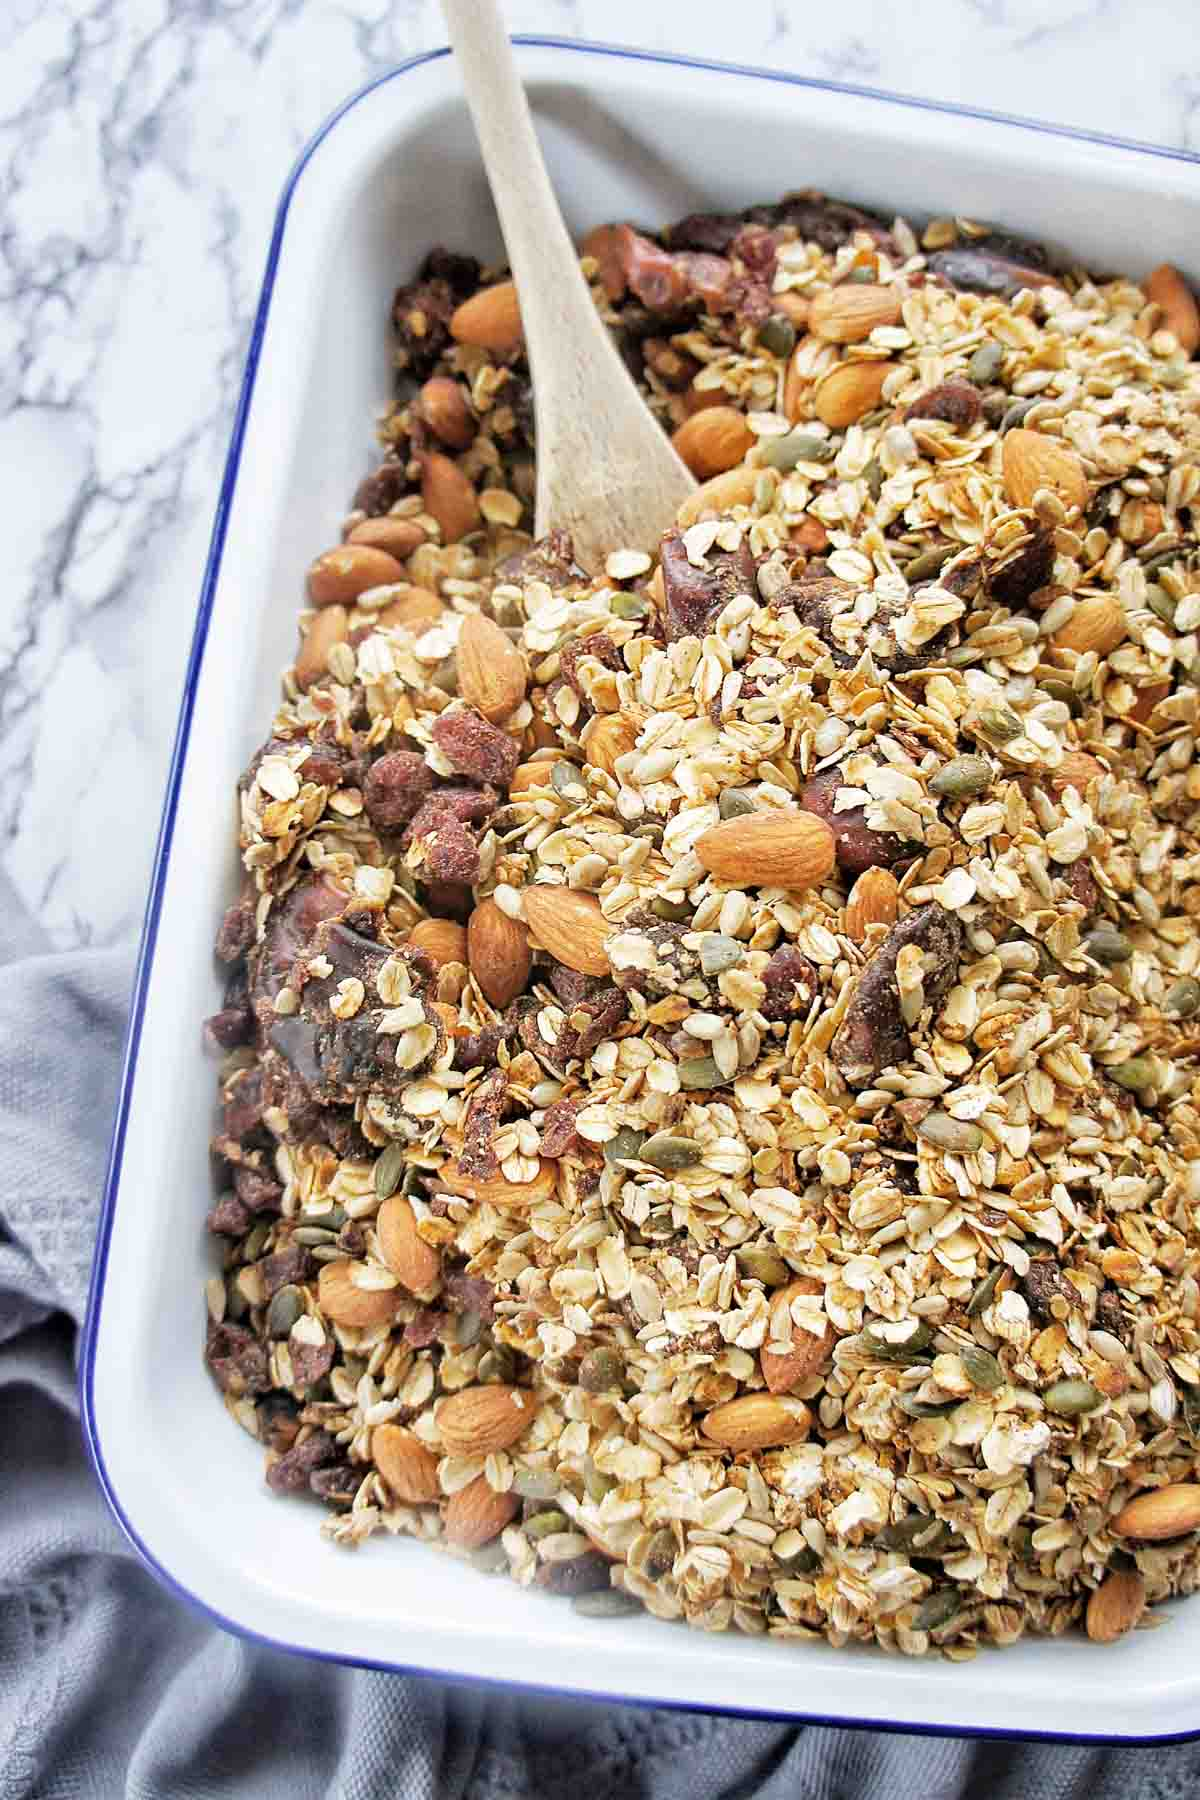 Instant Pot Granola in a white baking dish with wooden spoon